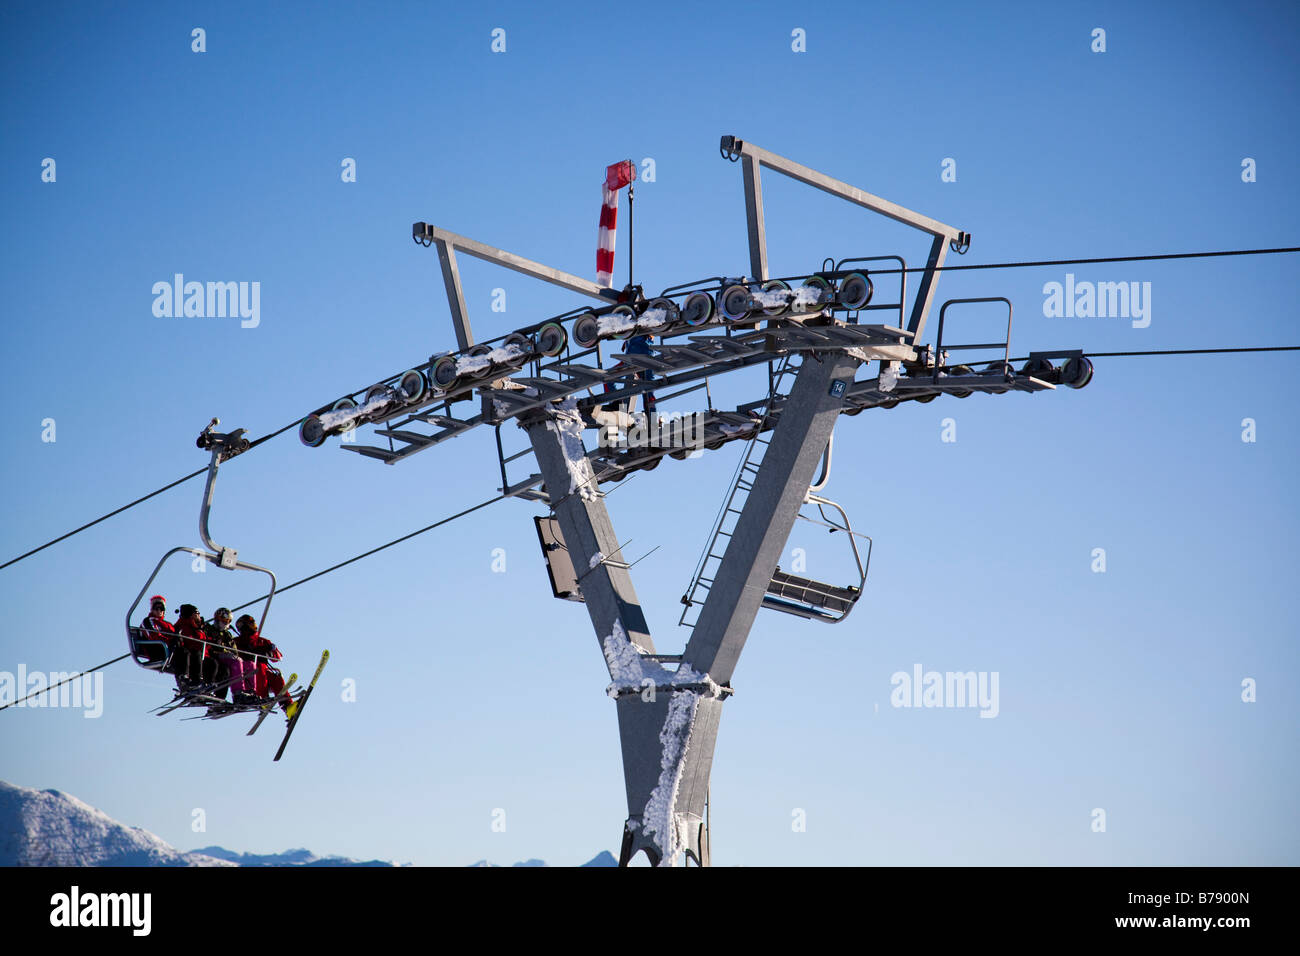 Griesskareck high plateau, view of the 4-people-chairlift of Flachau, detail, technician repairing a dysfunction, - Stock Image